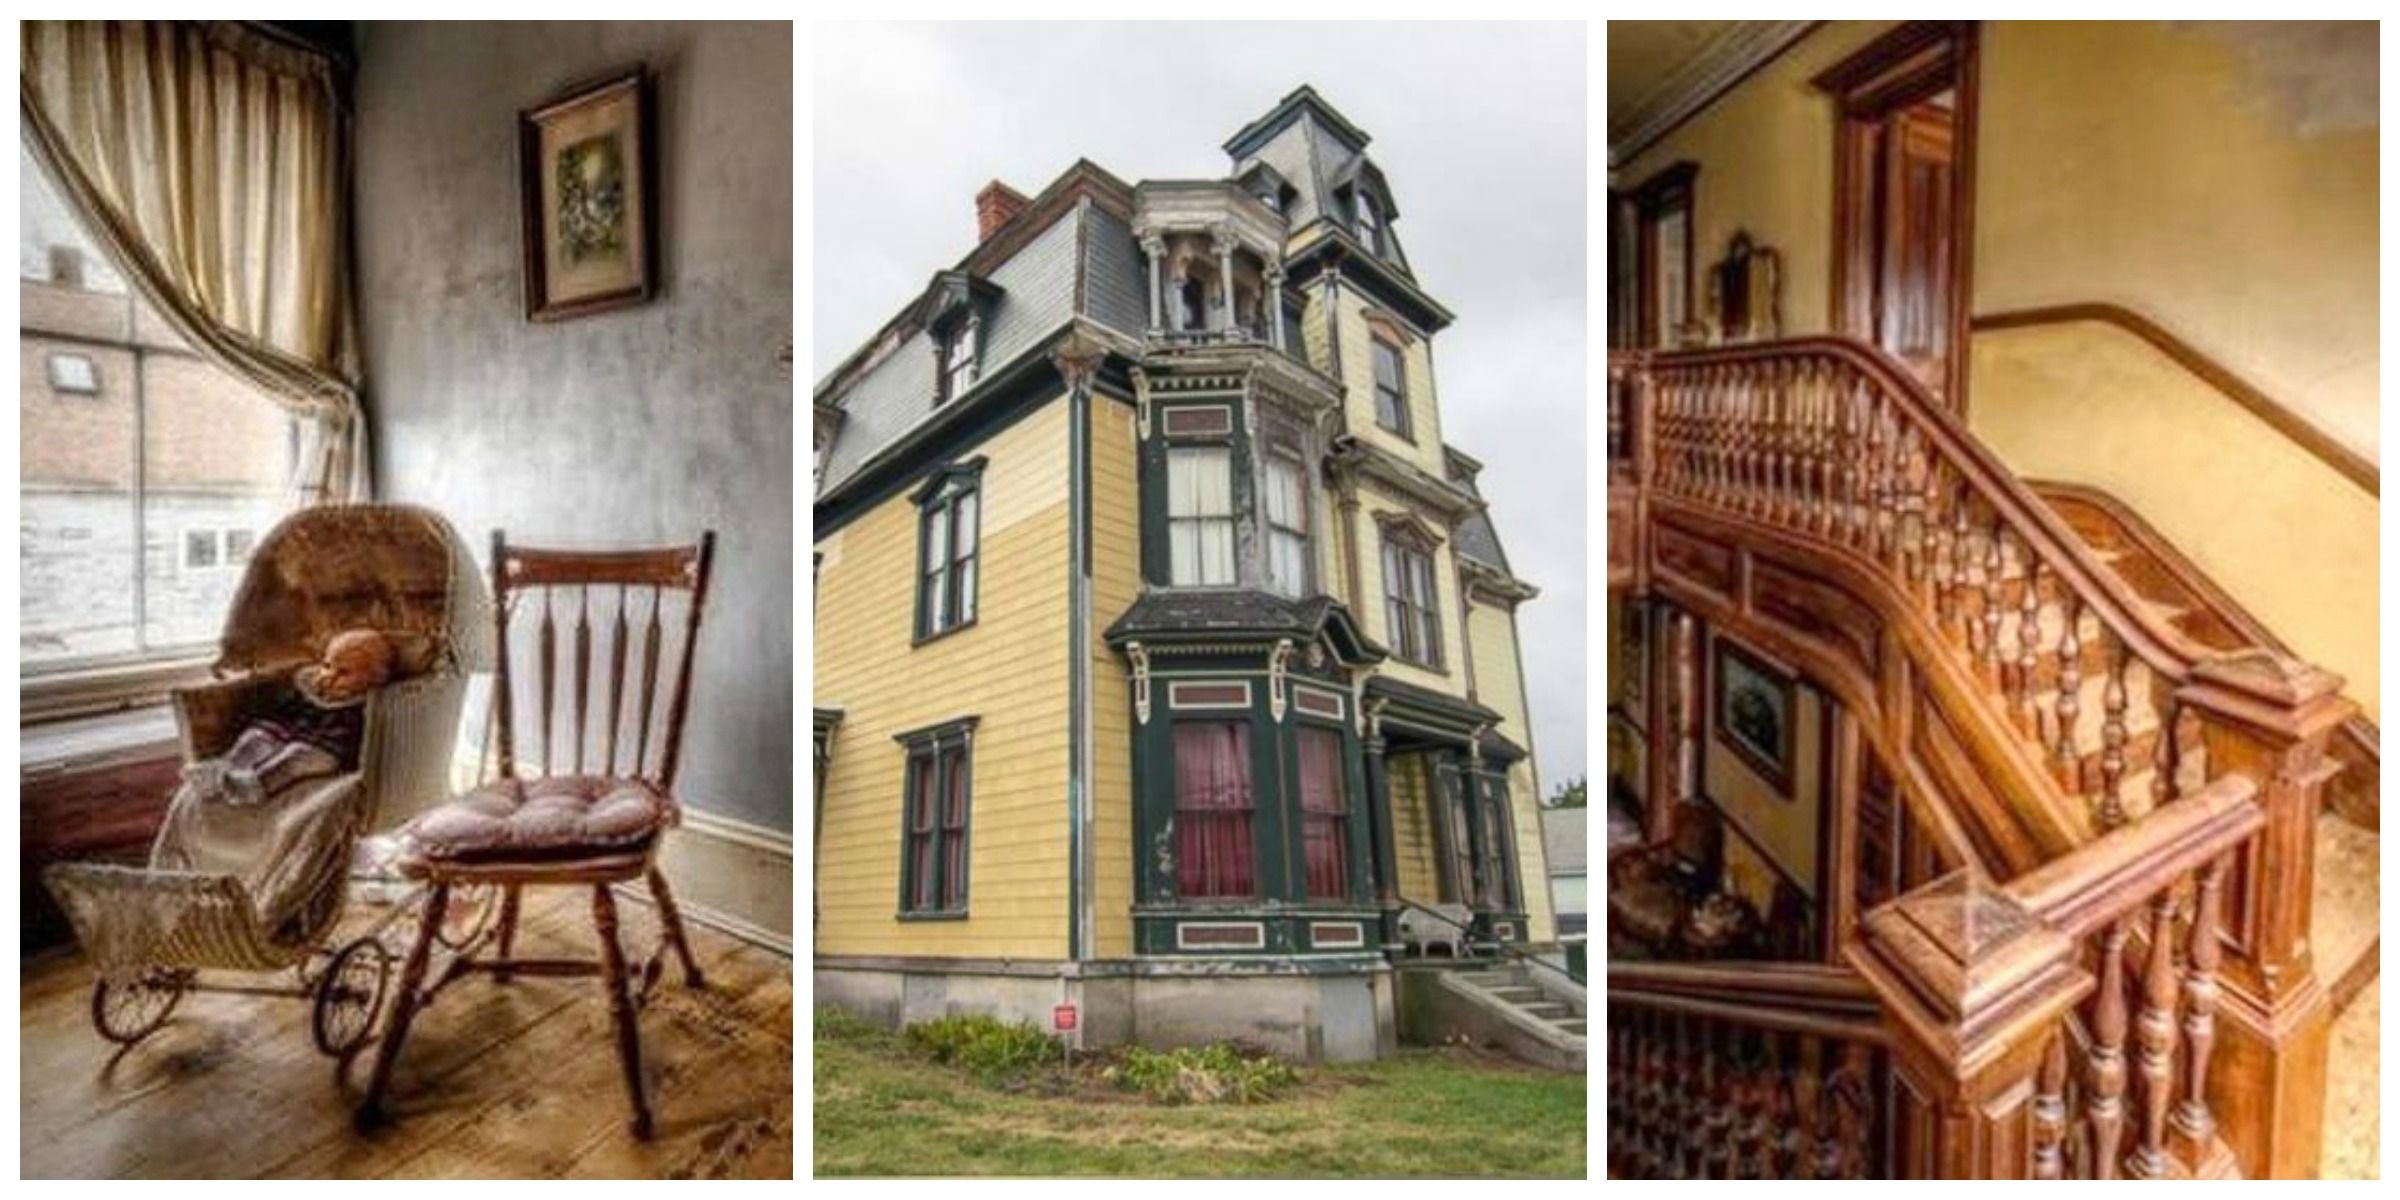 SK Pierce Mansion for Sale - Real Haunted Houses for Sale on original victorian house plans, cool victorian house plans, san francisco victorian house plans, old victorian house plans, big victorian house plans, vintage victorian house plans, beautiful victorian house plans,